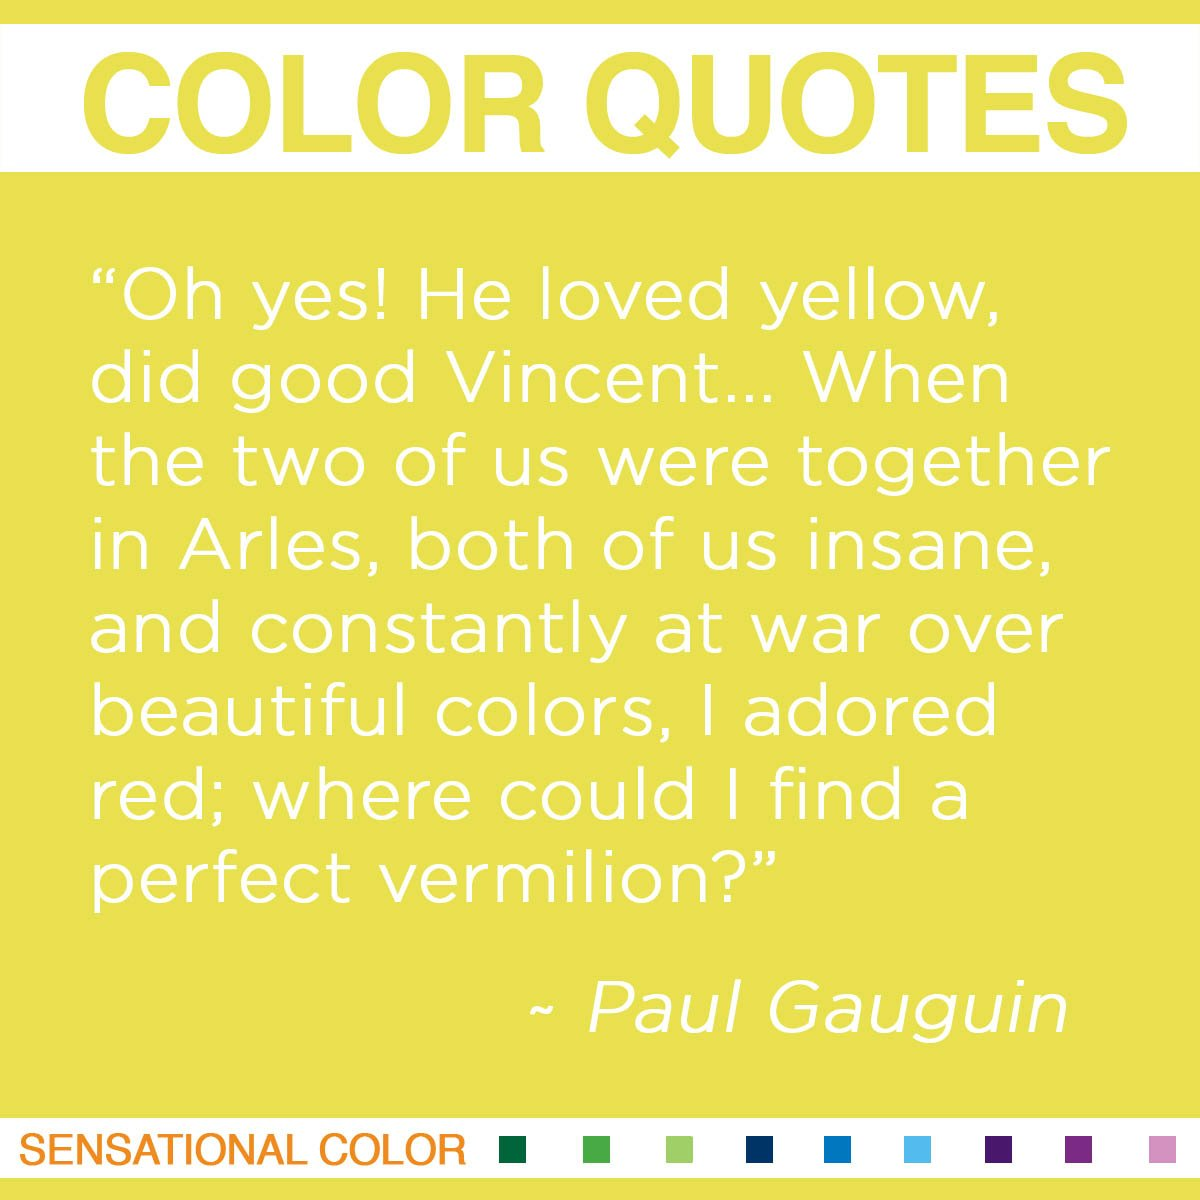 """Oh yes! He loved yellow, did good Vincent… When the two of us were together in Arles, both of us insane, and constantly at war over beautiful colors, I adored red; where could I find a perfect vermilion?"" - Paul Gauguin"